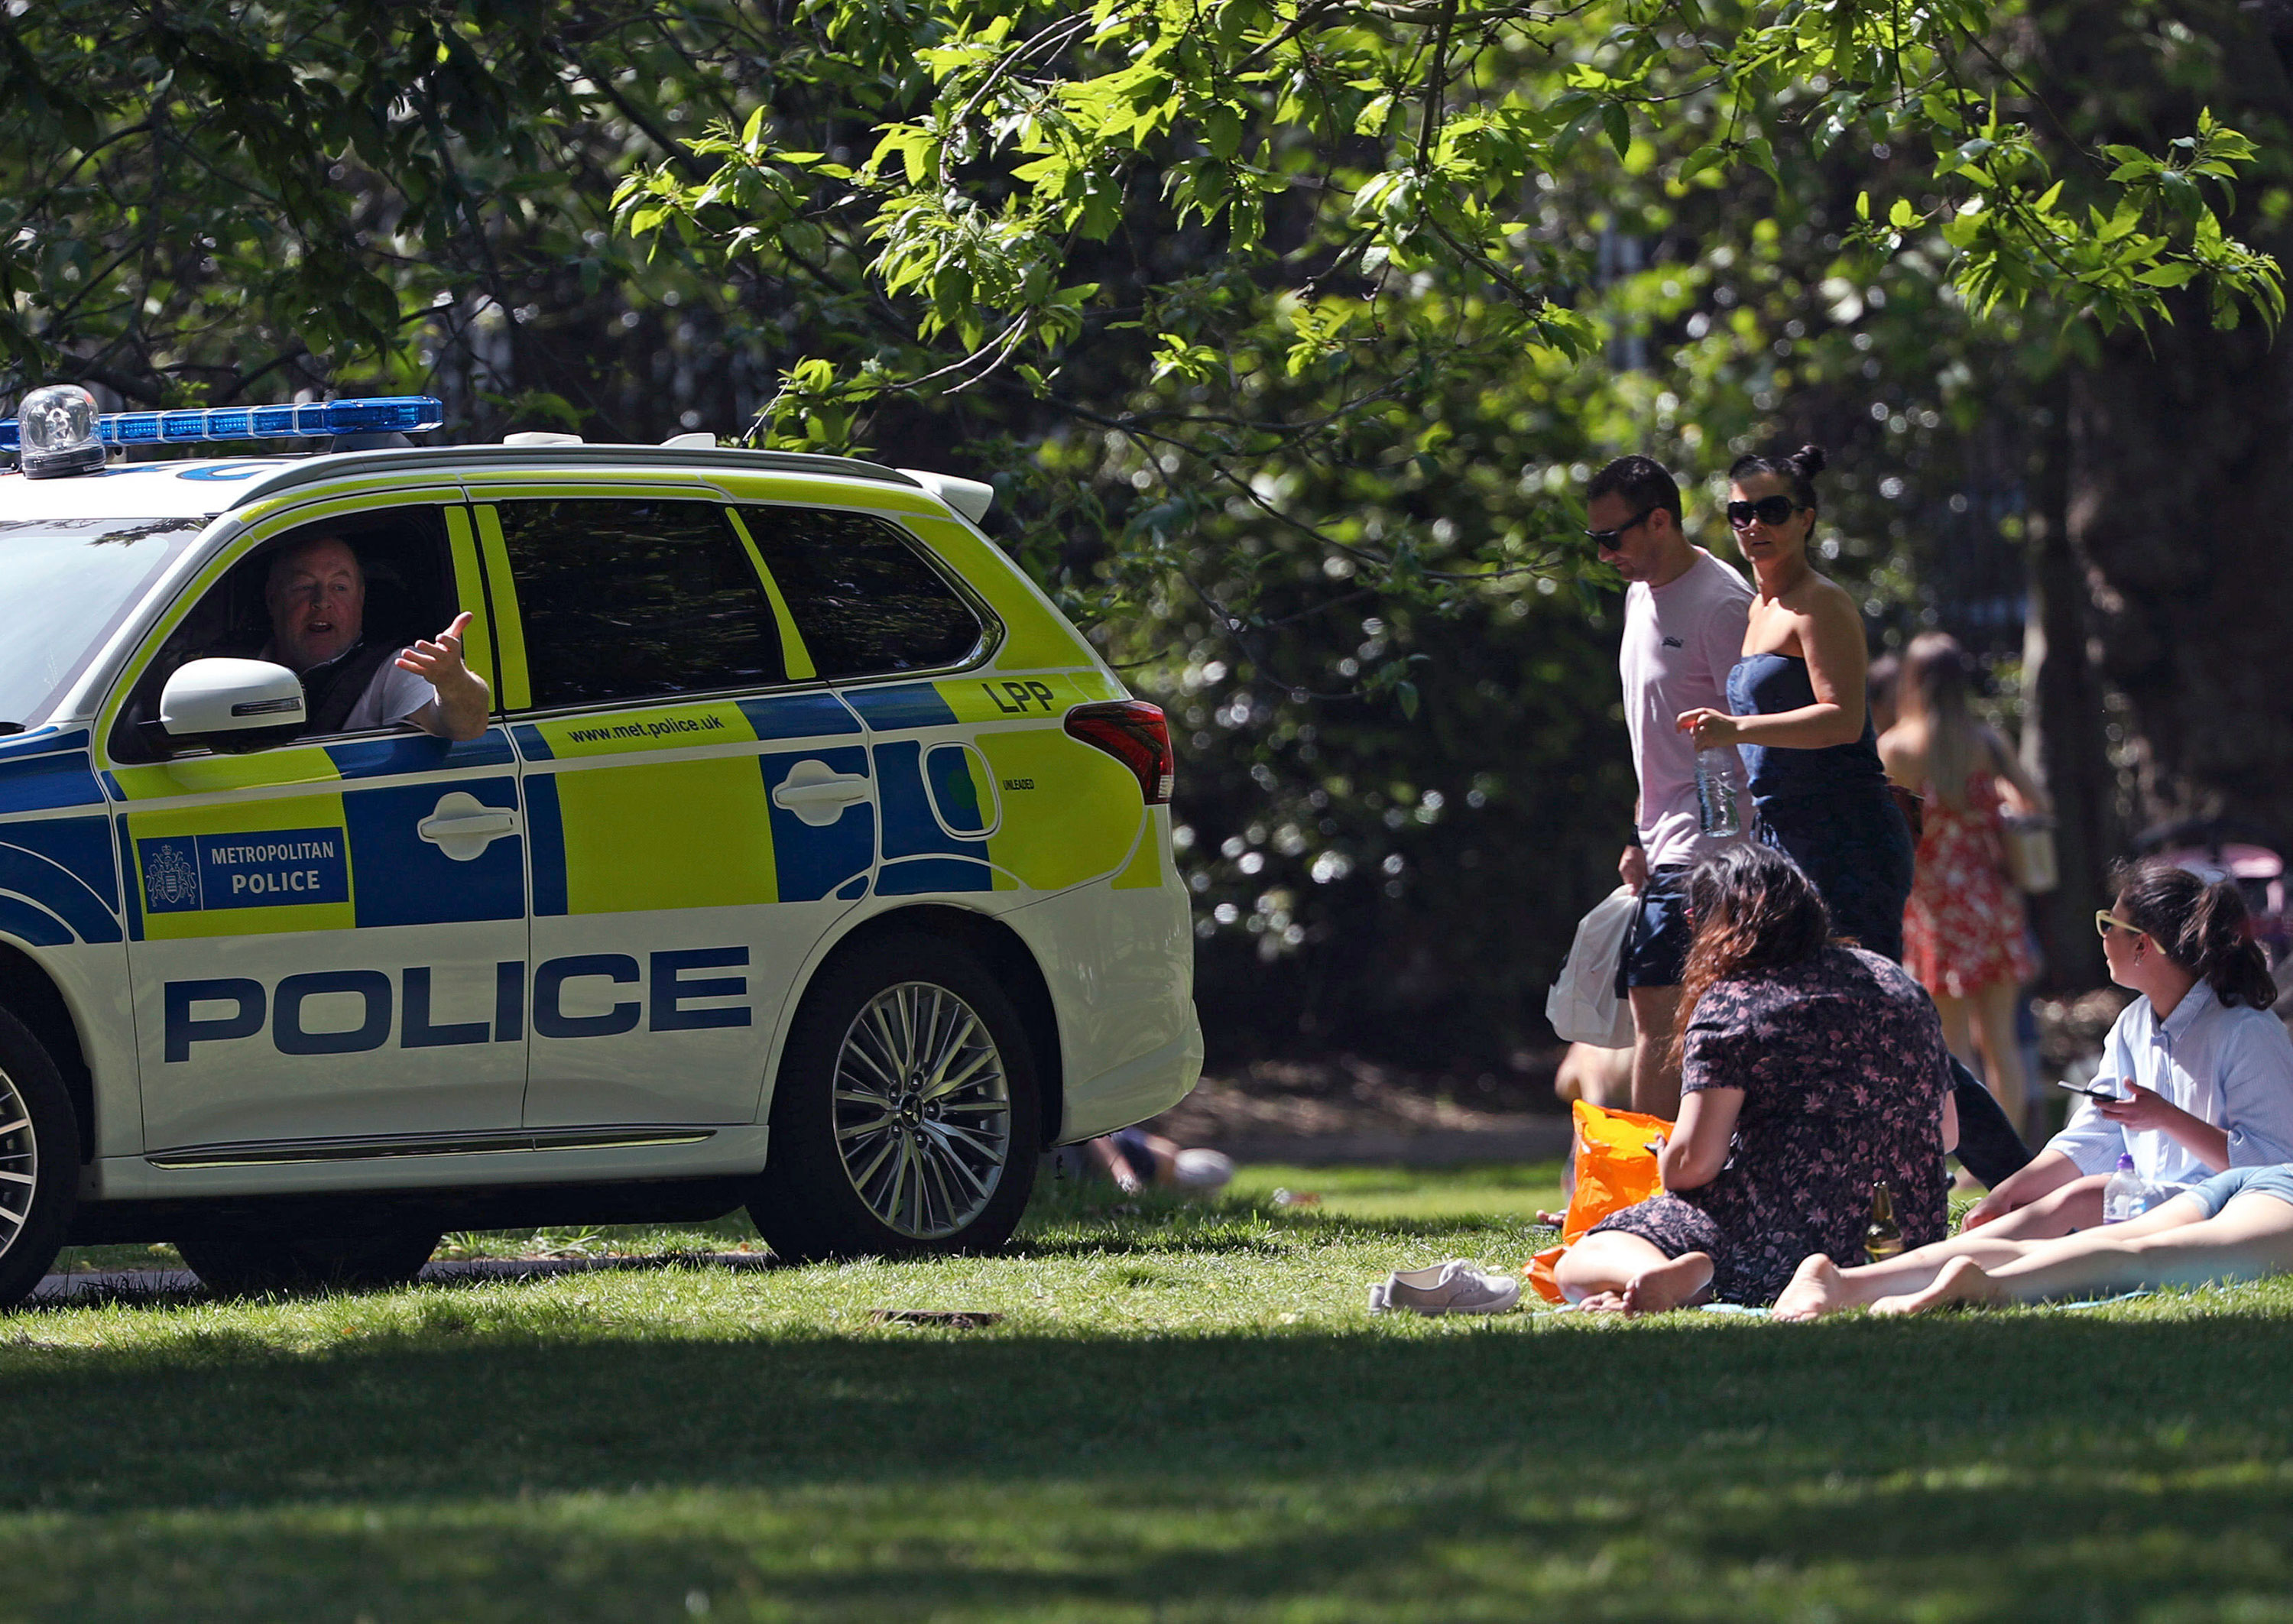 A police officer patrols in Greenwich Park in London, on May 9.